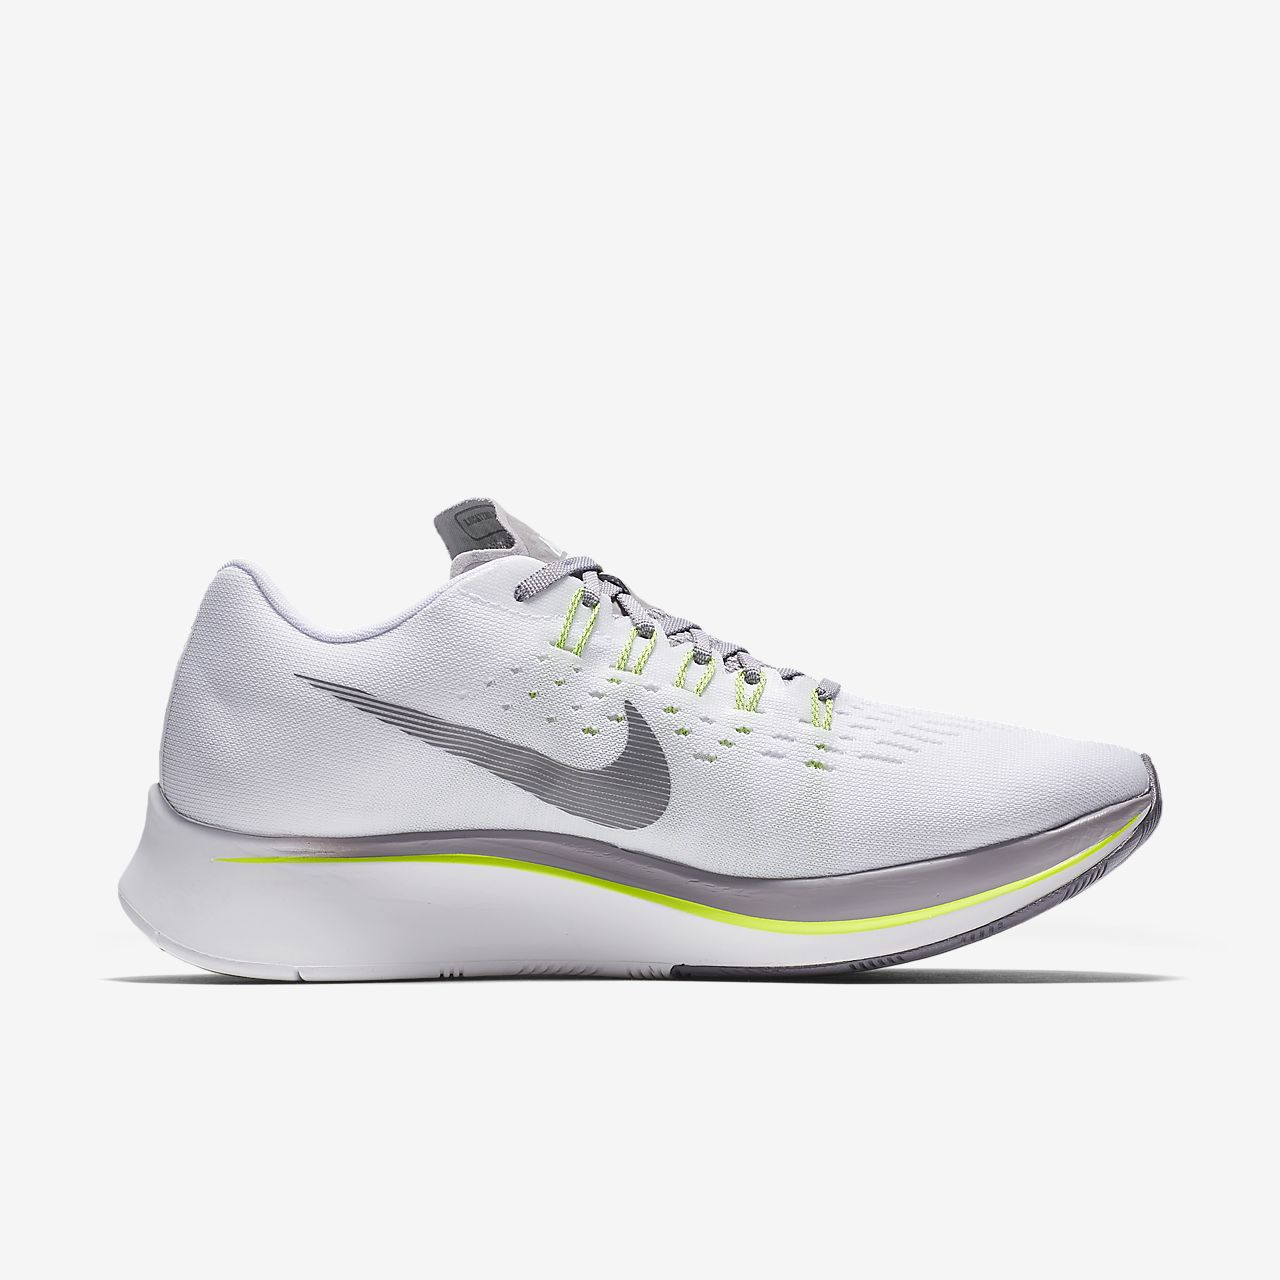 11ab1a053582 Nike Zoom Fly Men s Running Shoe. Nike.com